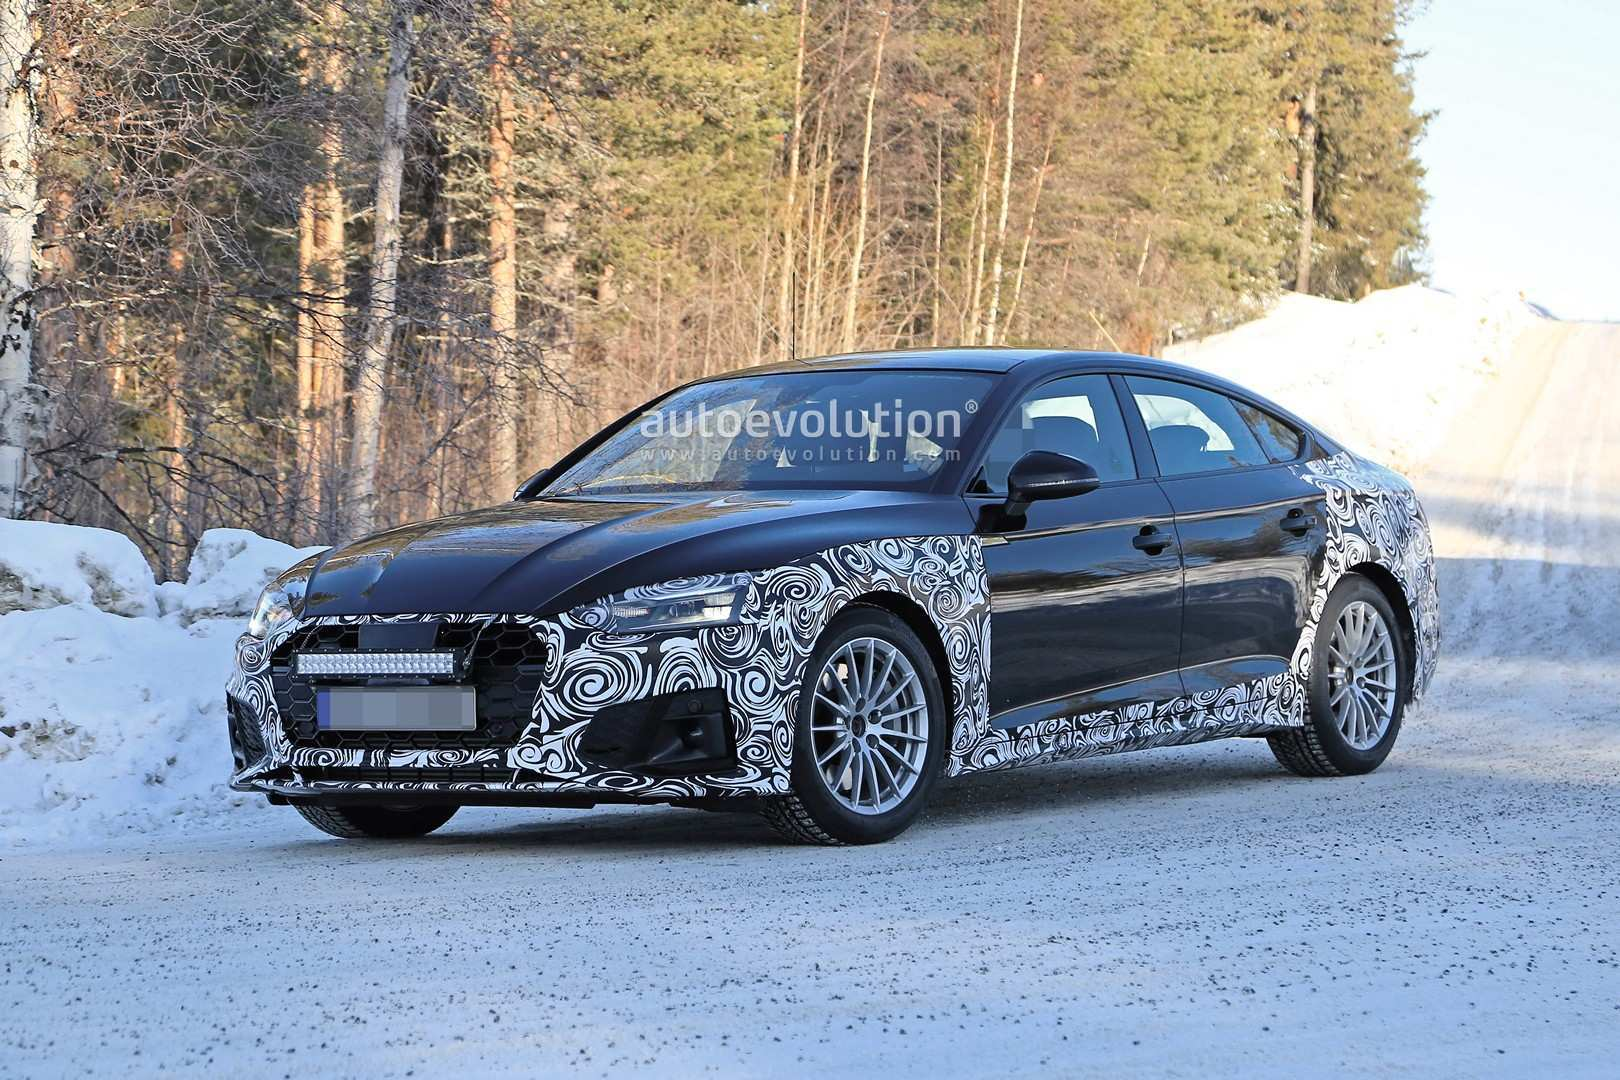 35 All New Audi A5 2020 Images